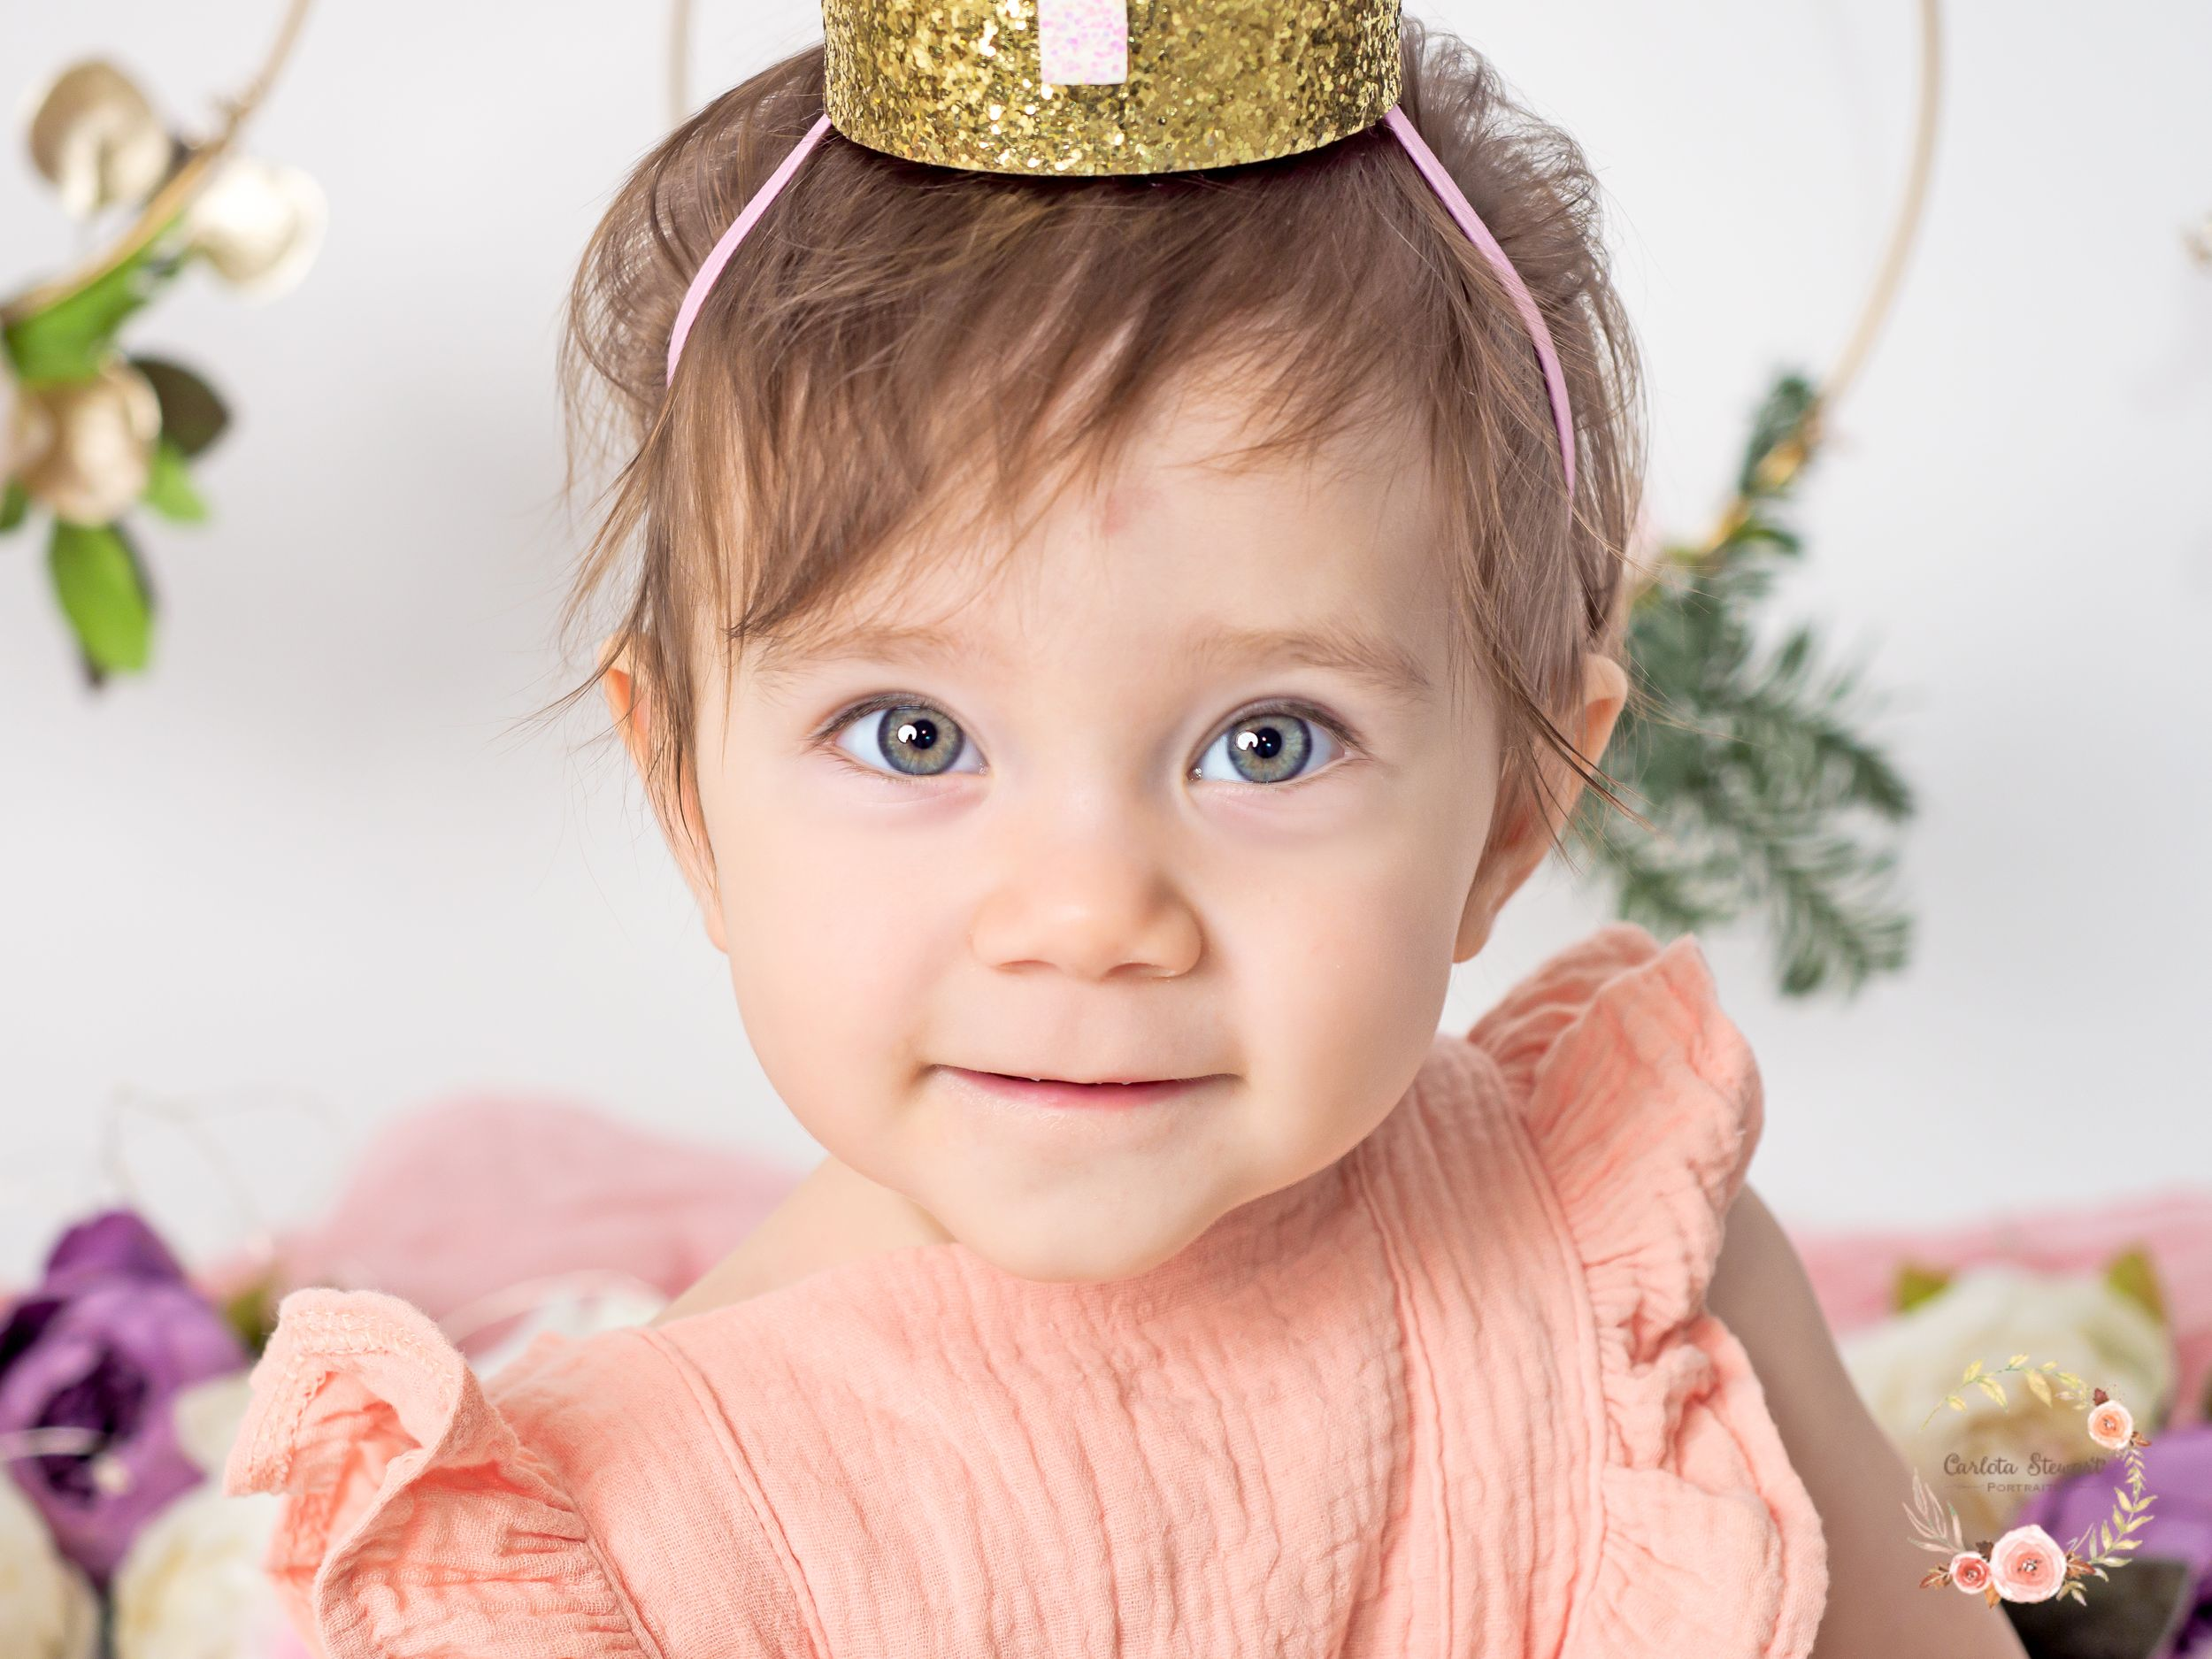 Girl celebrating her first birthday with a photoshoot in Mödling, Gumpoldskirchen, Austria